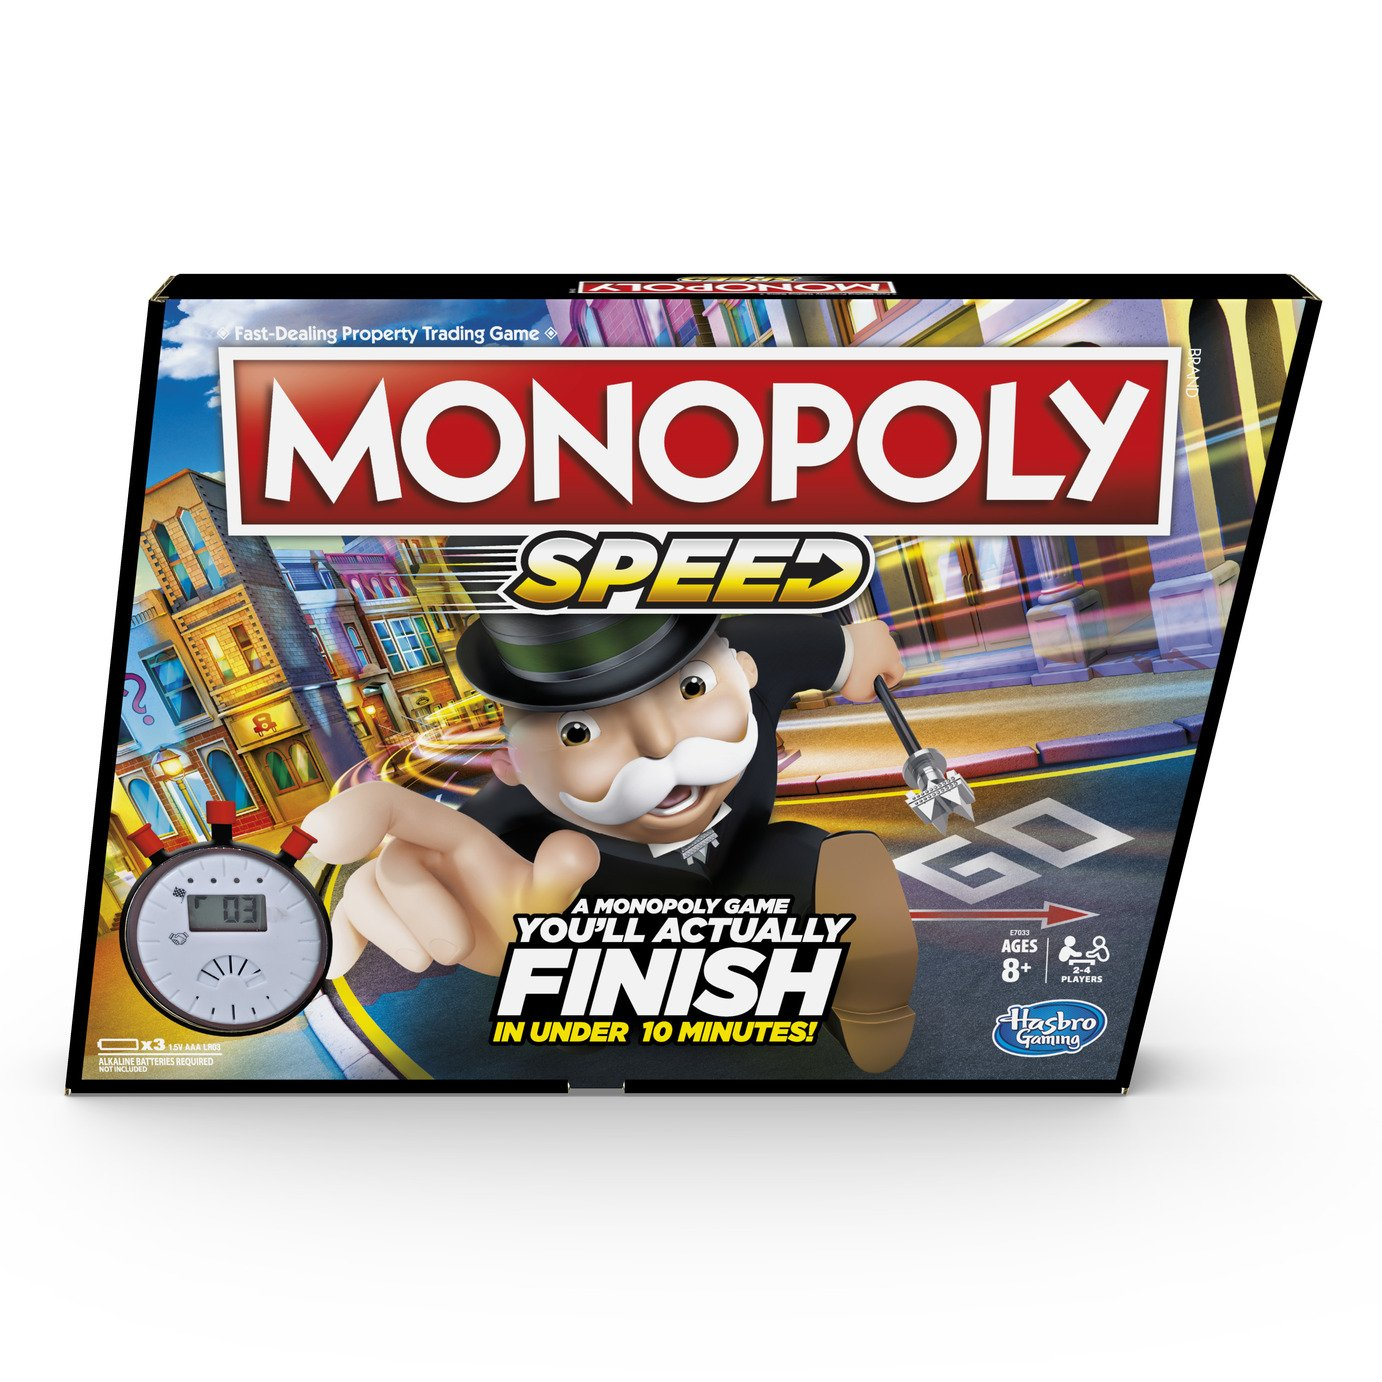 Monopoly Speed by Hasbro Gaming